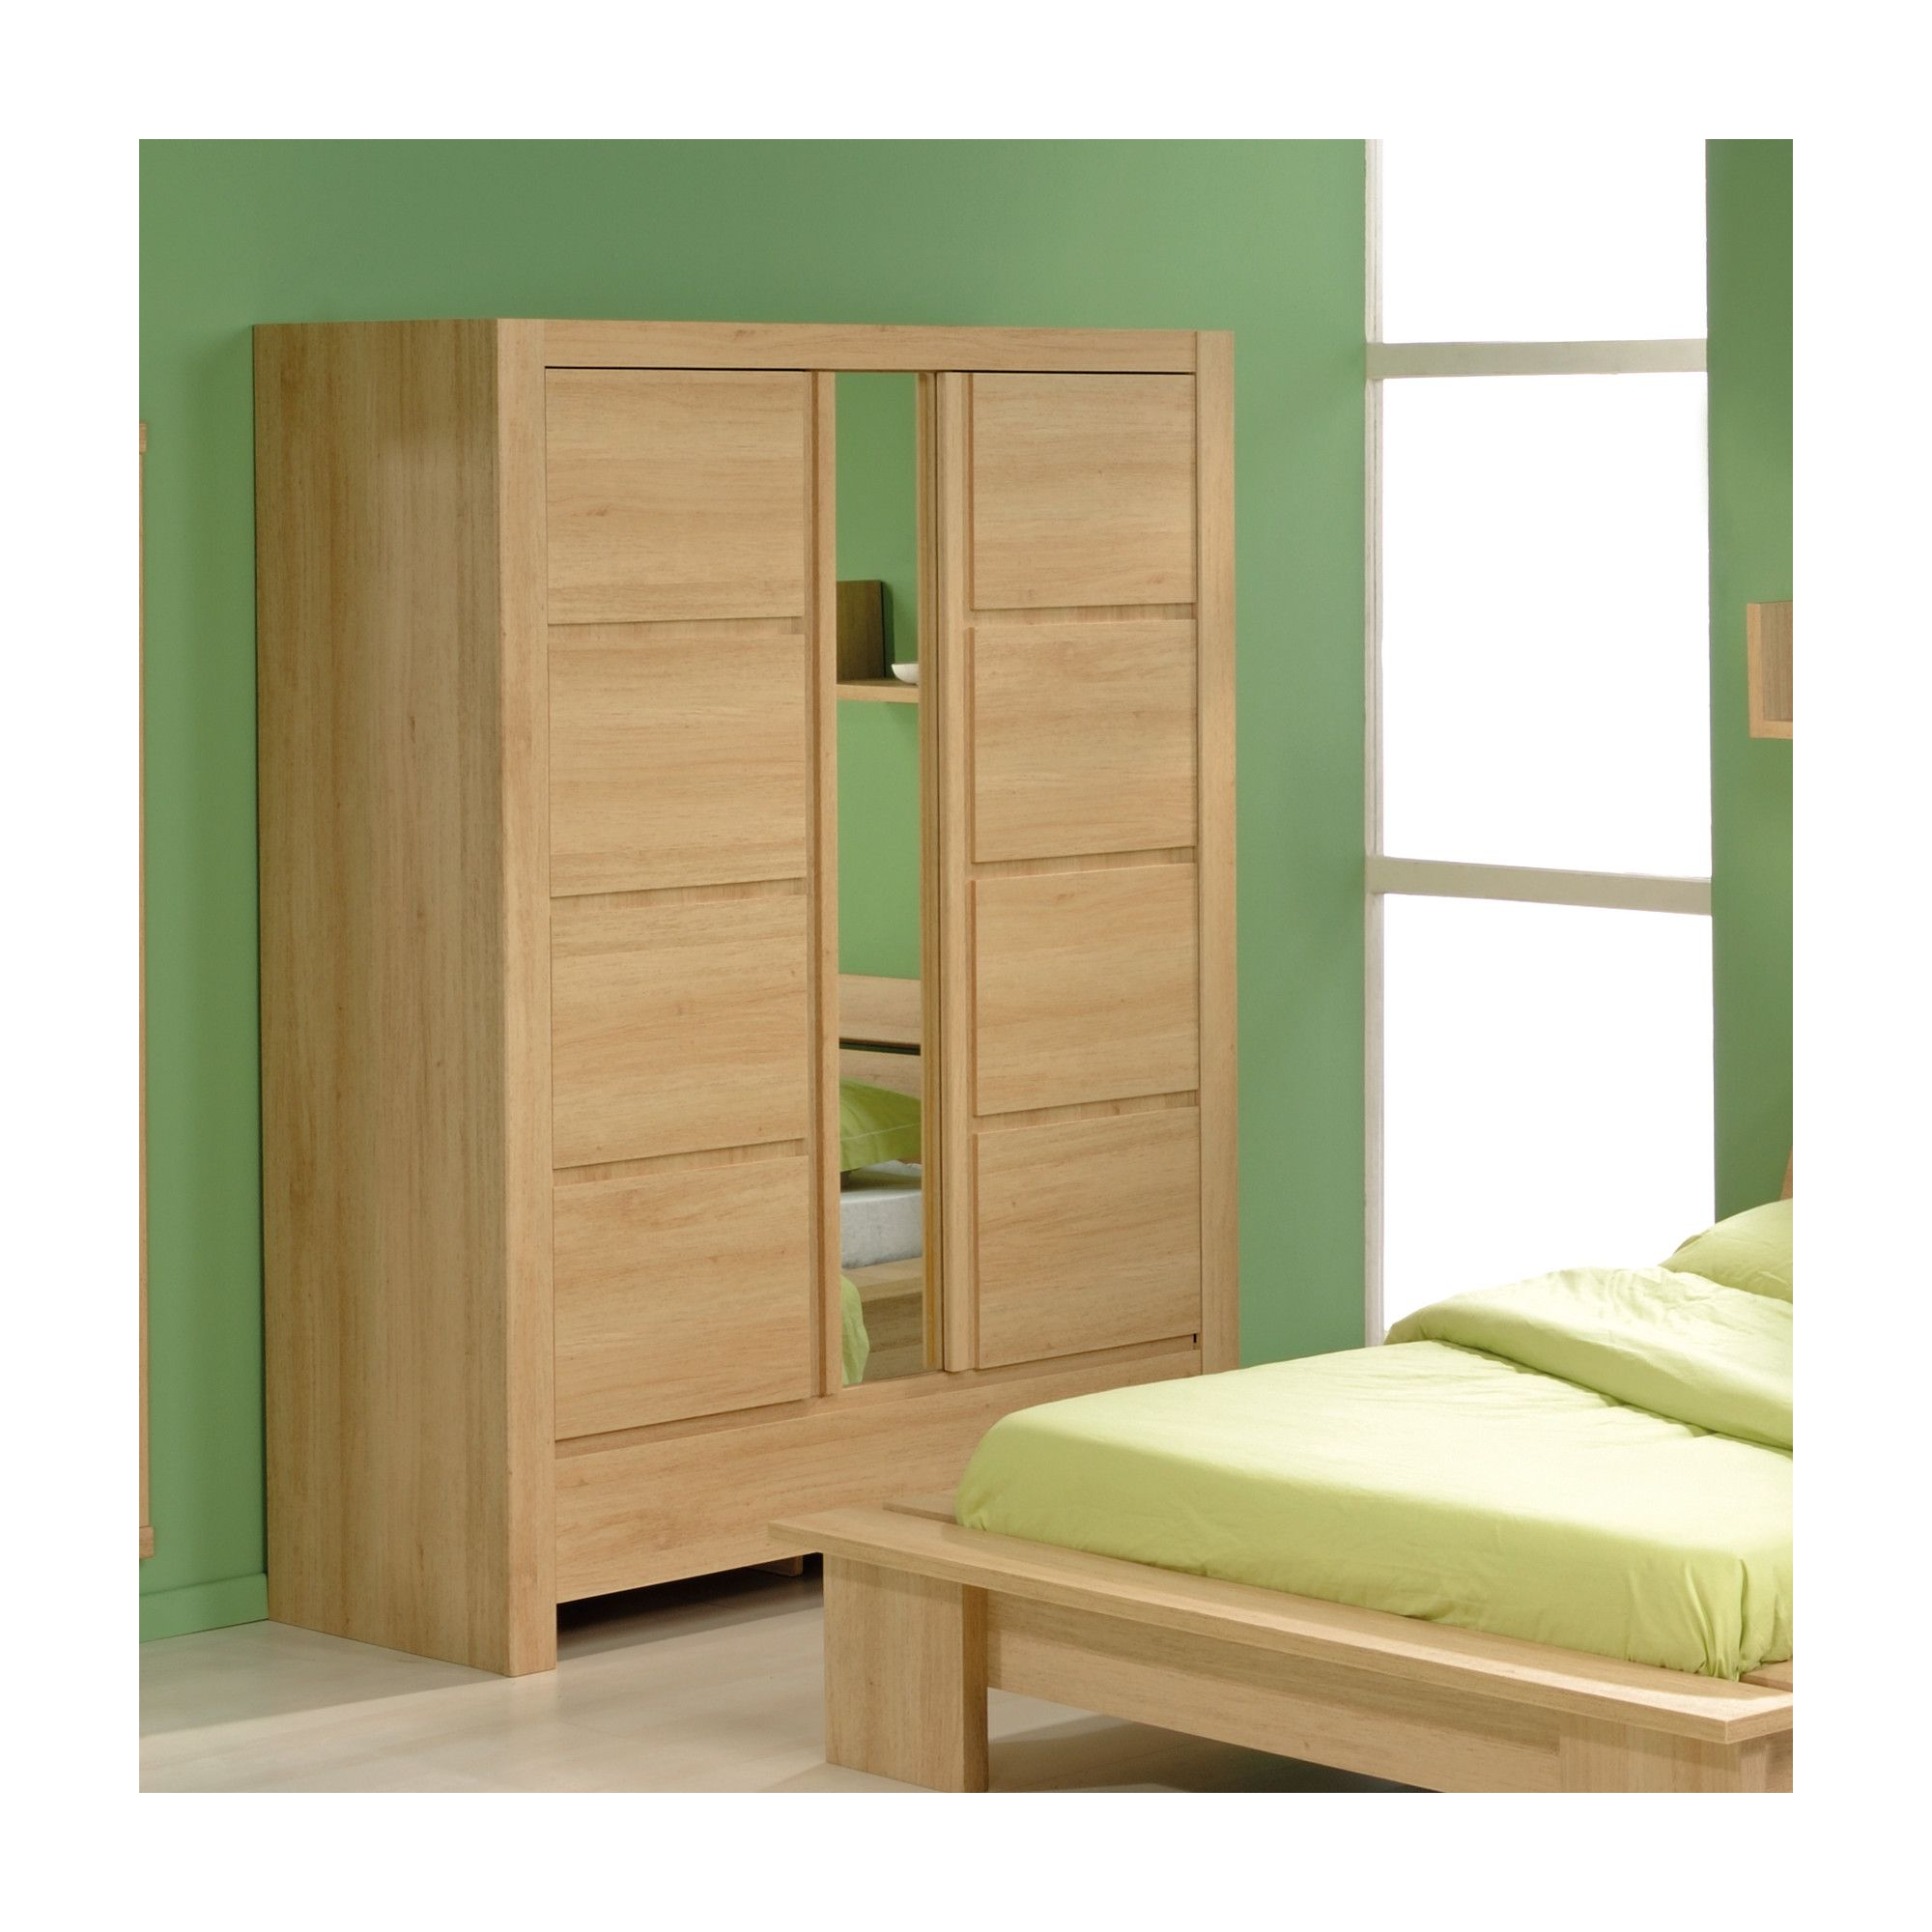 Parisot Spa Mirrored Two Door Wardrobe in Natural Oak at Tesco Direct